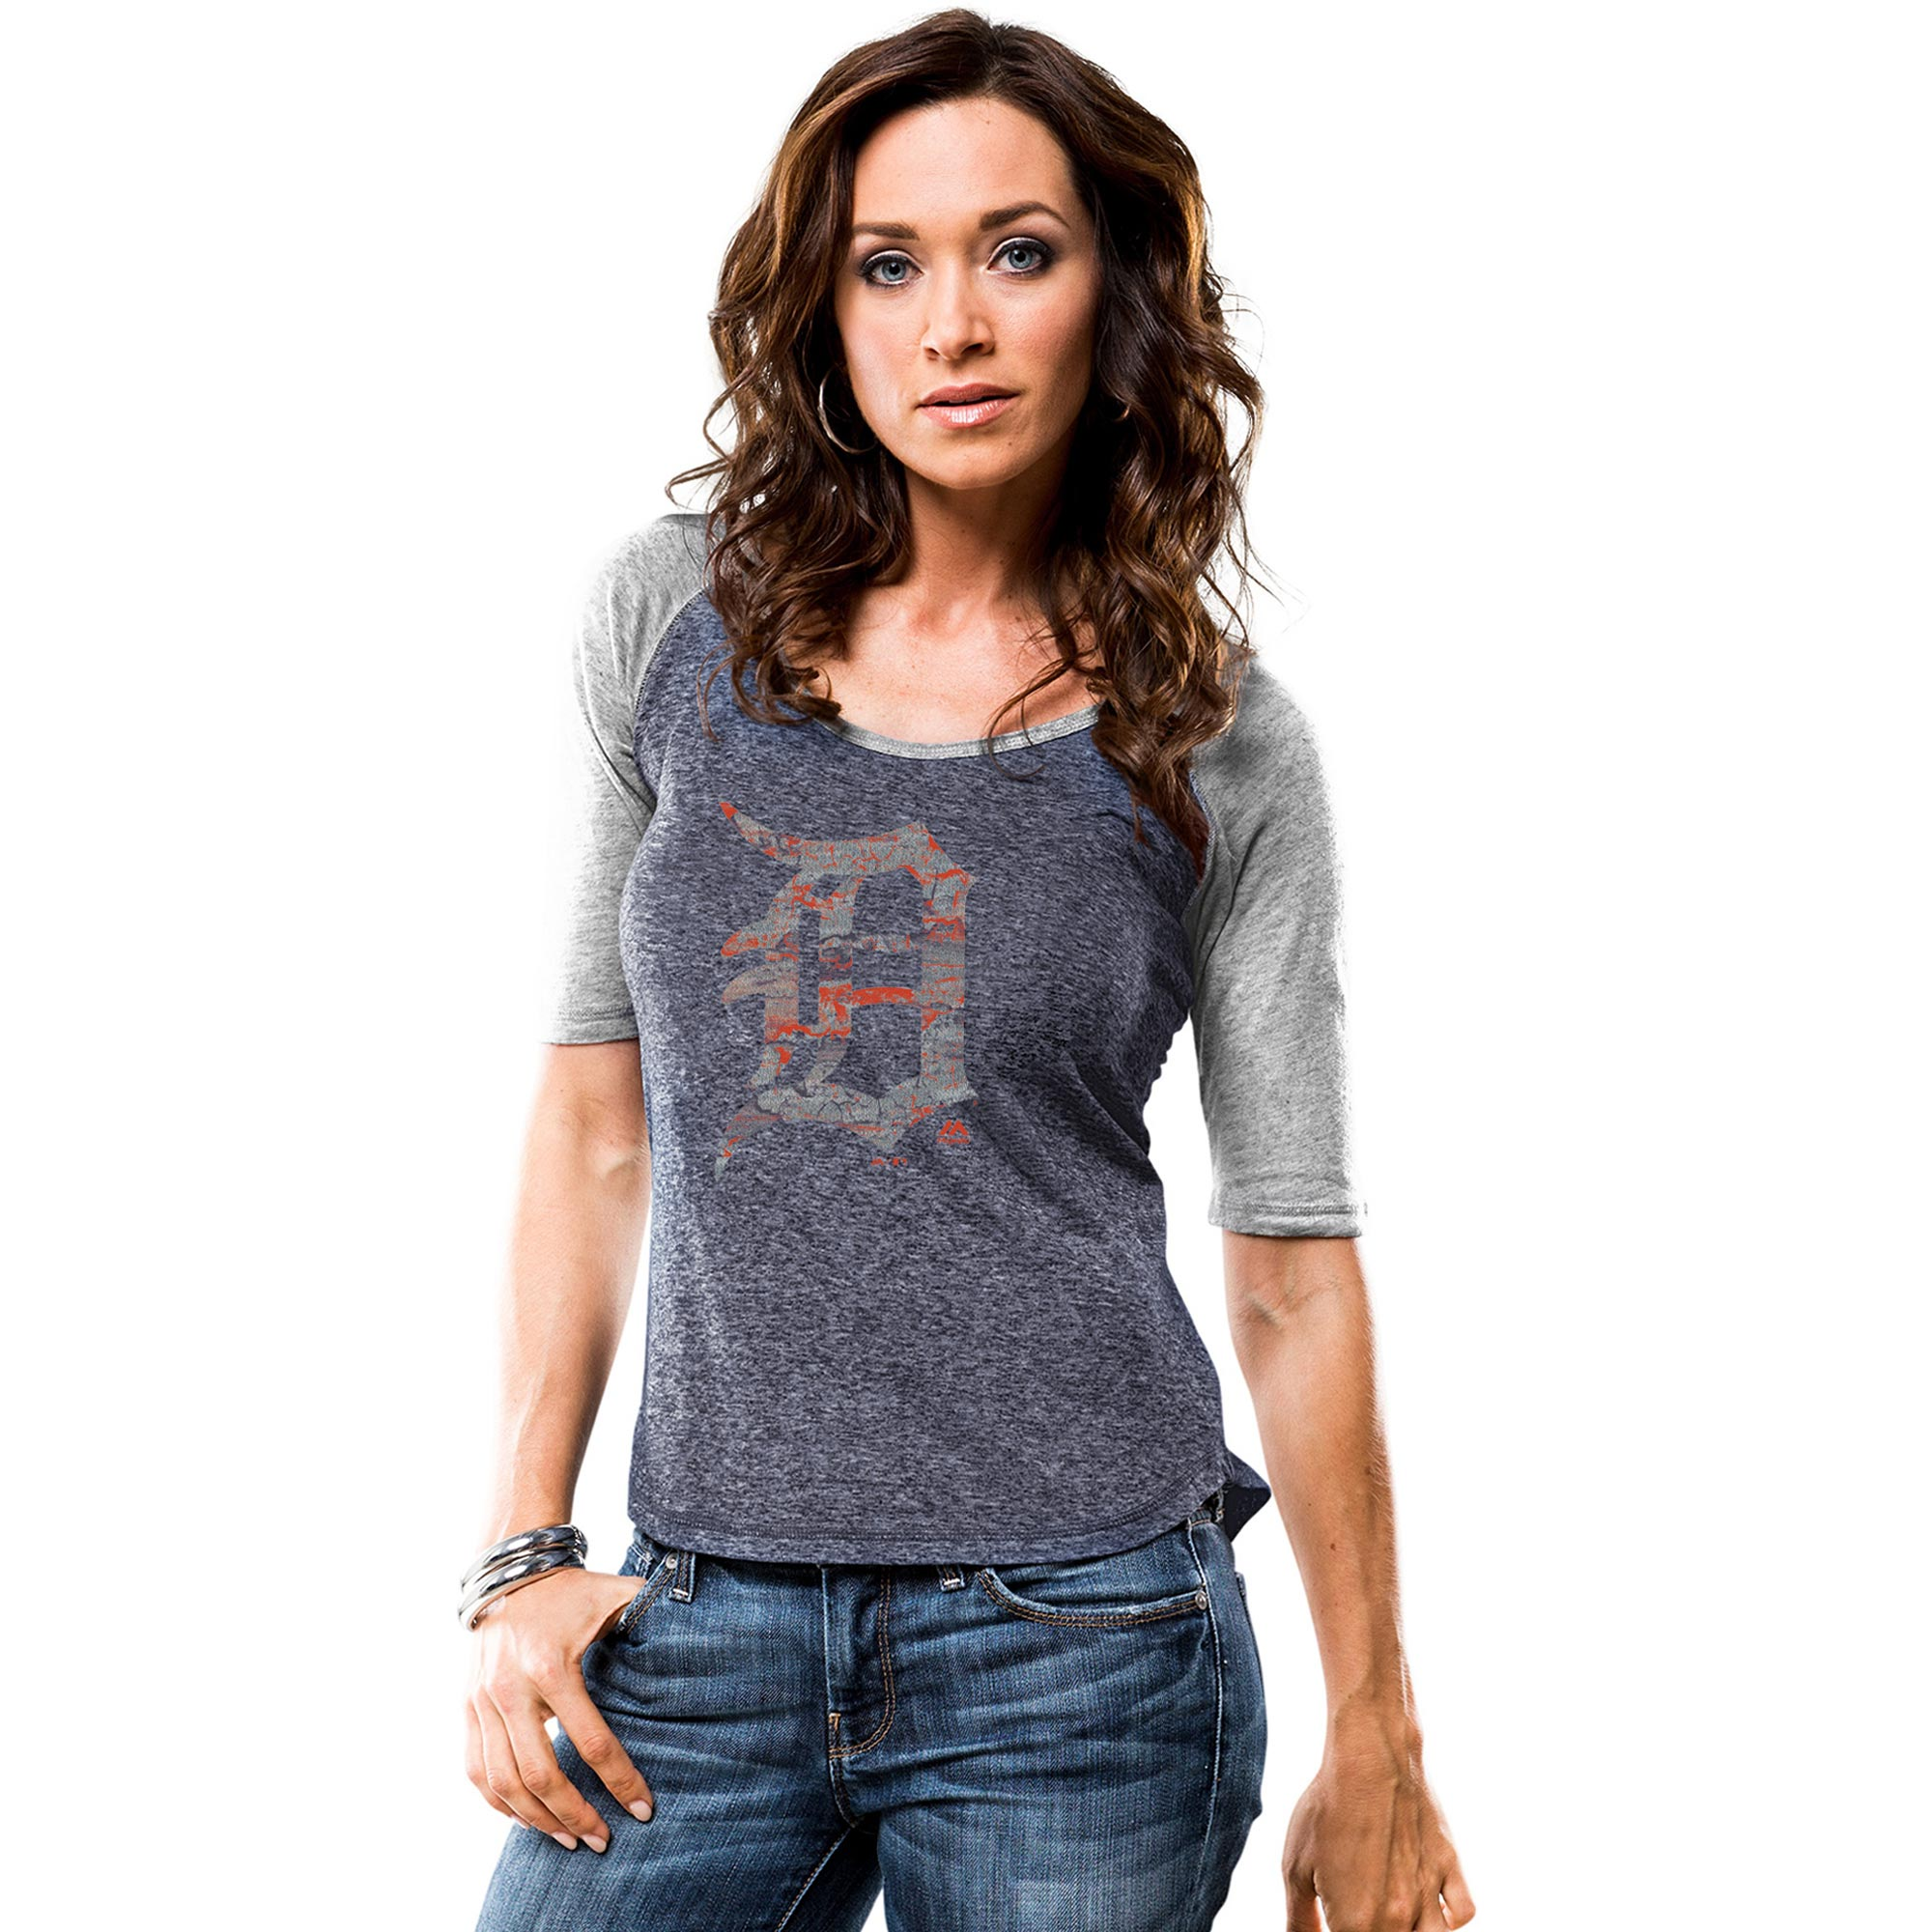 Detroit Tigers Majestic Women's Athletic Greatness Raglan Half Sleeve T-Shirt - Navy